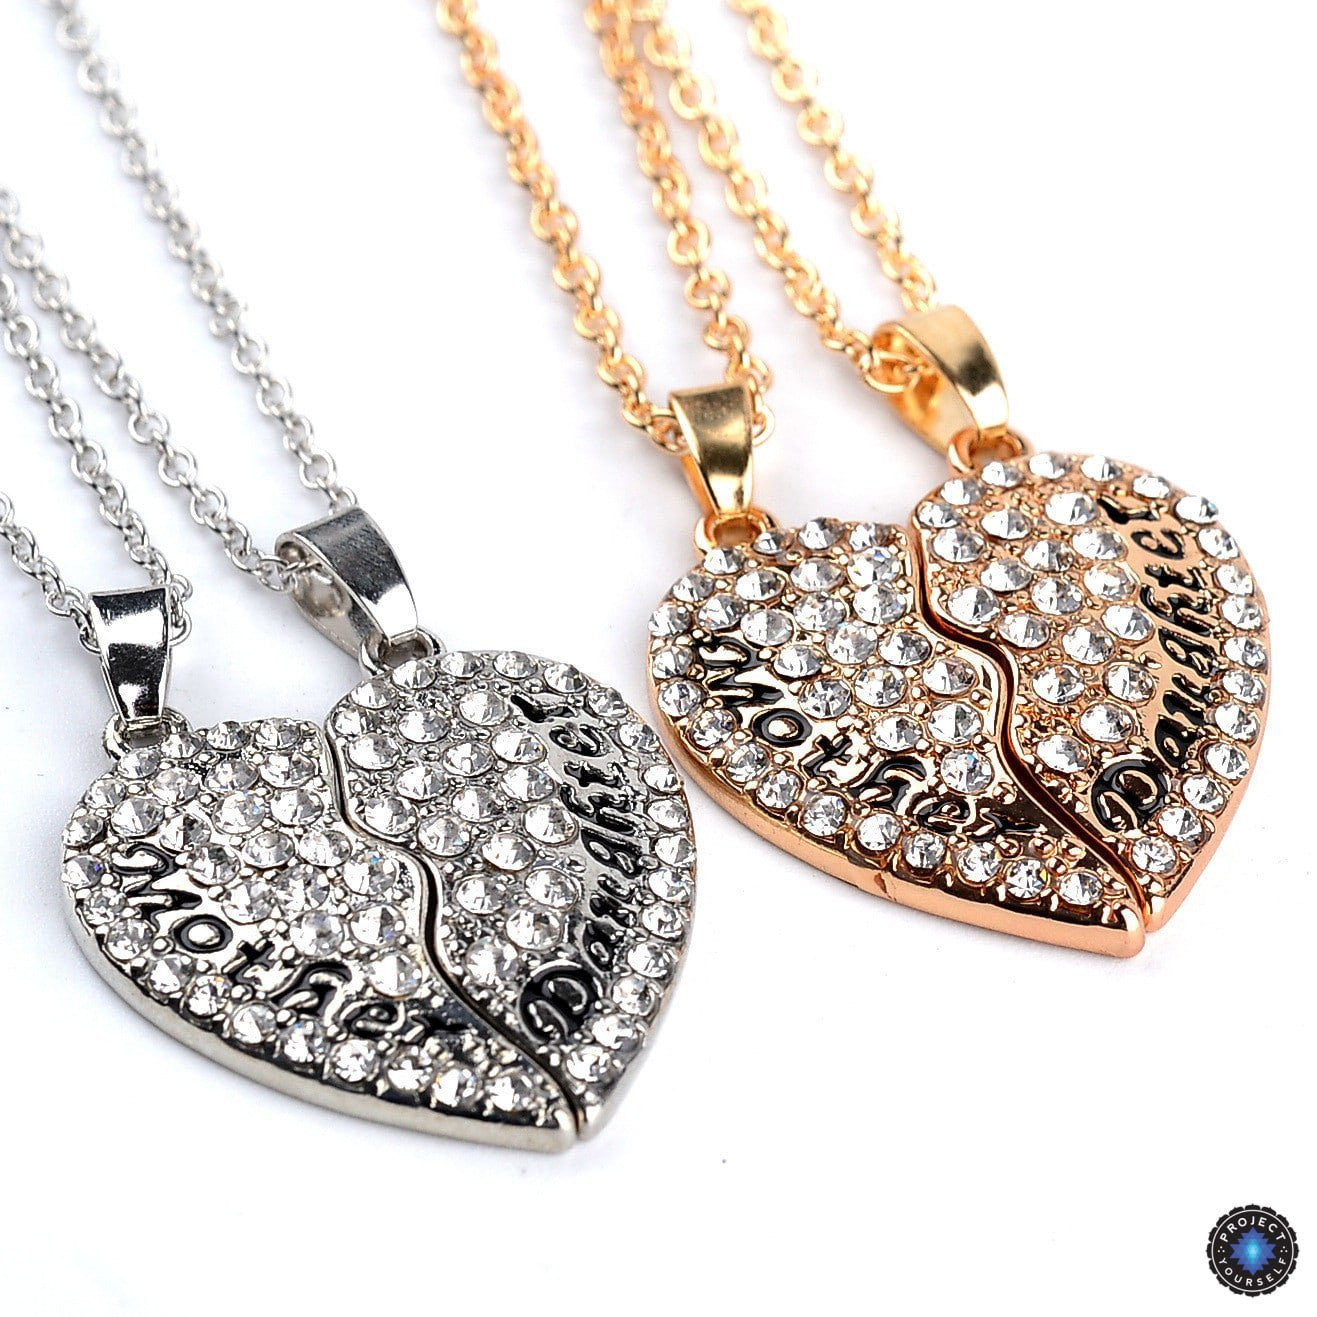 Crystal studded two part heart mother daughter pendant necklace crystal studded two part heart mother daughter pendant necklace set necklace aloadofball Gallery